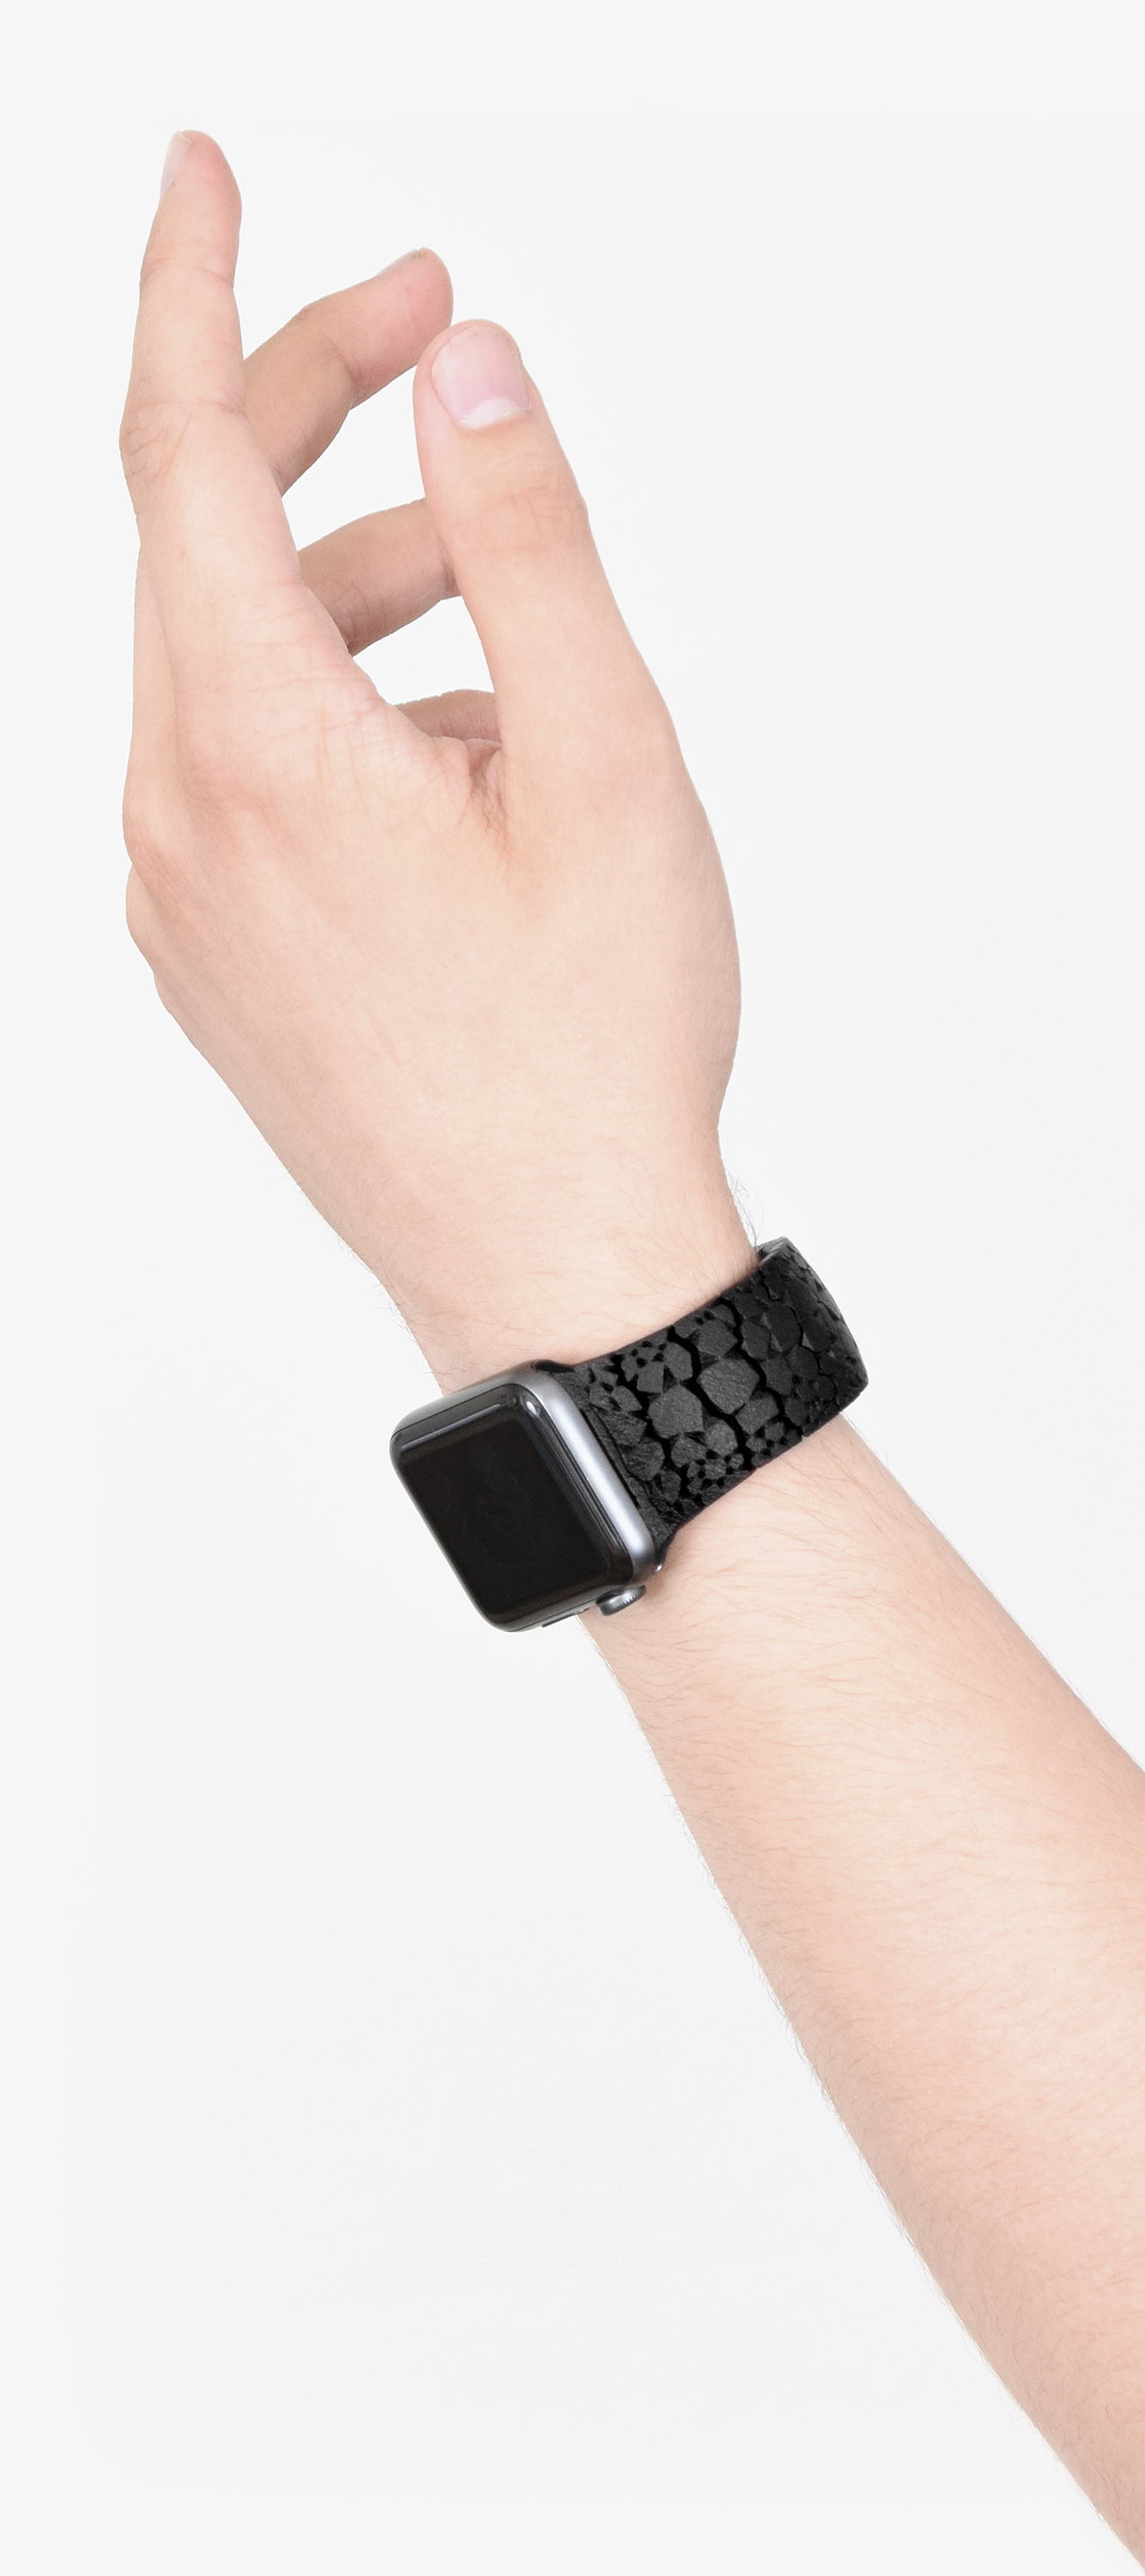 Lifestyle Image | Freshfiber Apple Watch Bands, Design by Matthijs Kok for Freshfiber